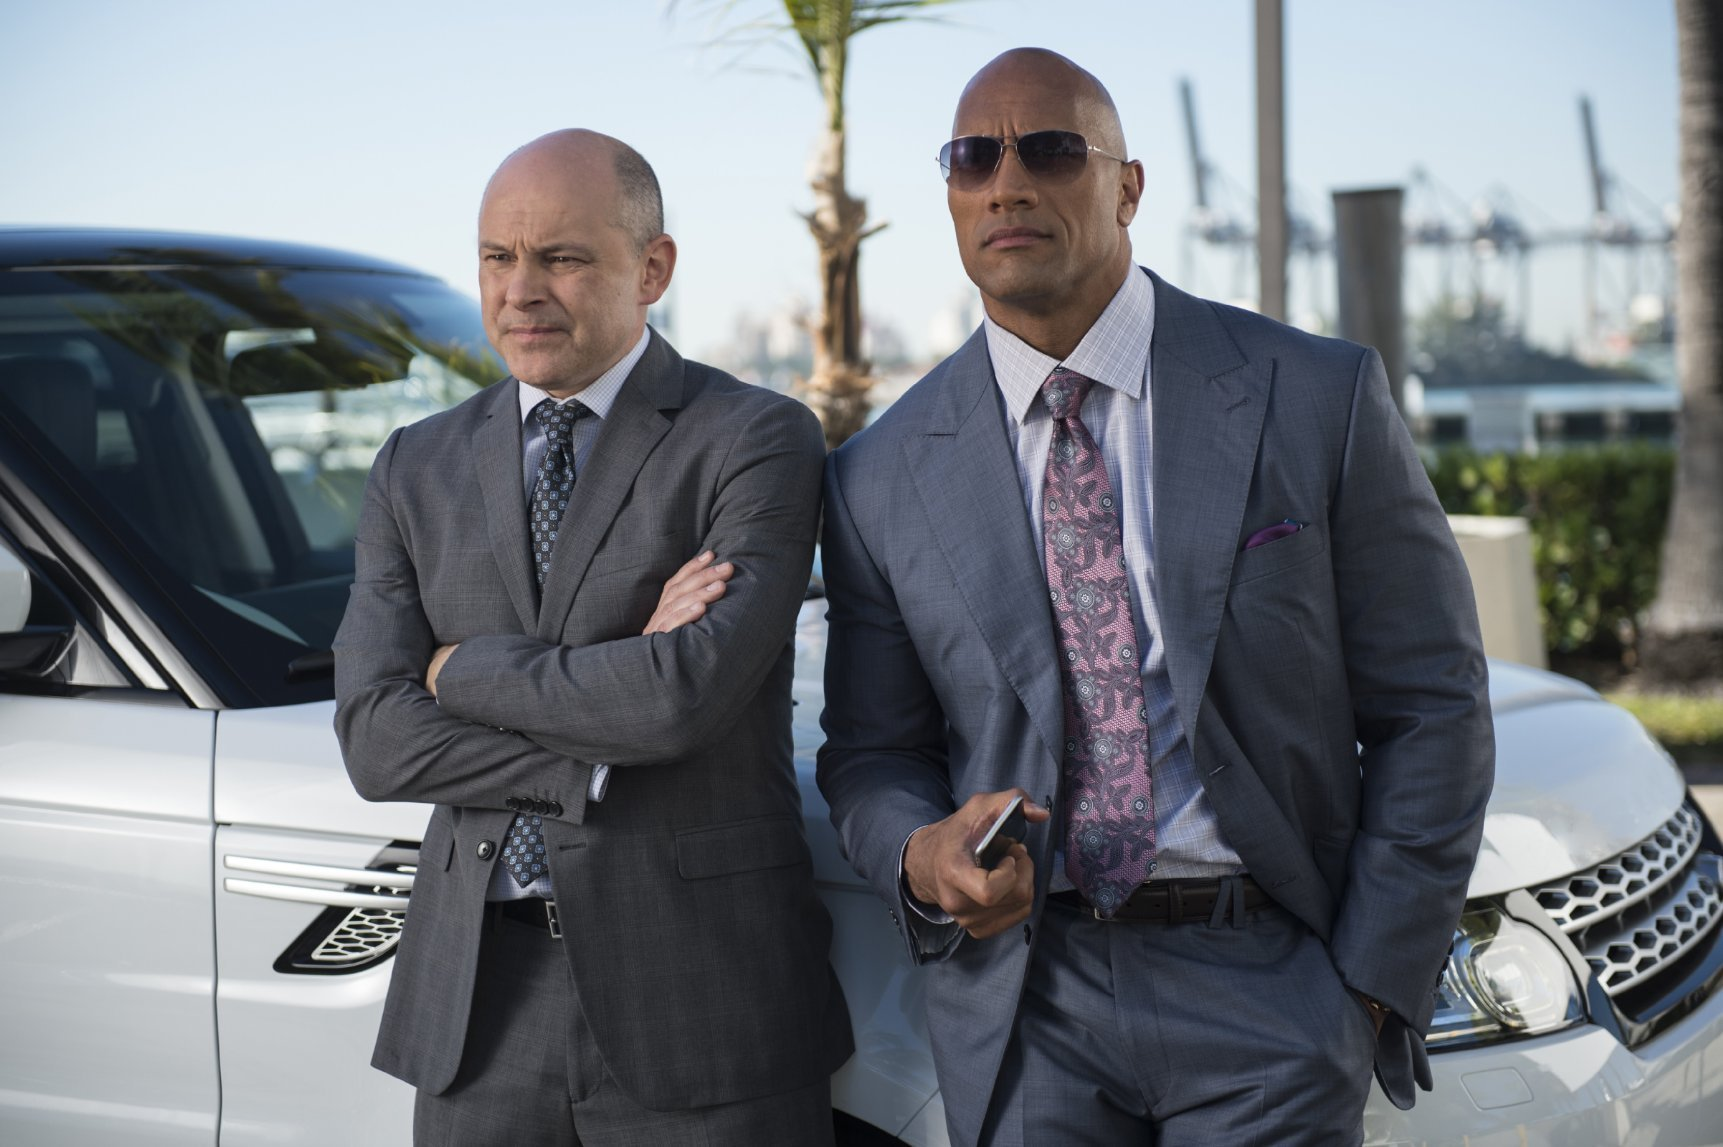 'Ballers' star Dwayne Johnson pays tribute to the show amid cancellation news